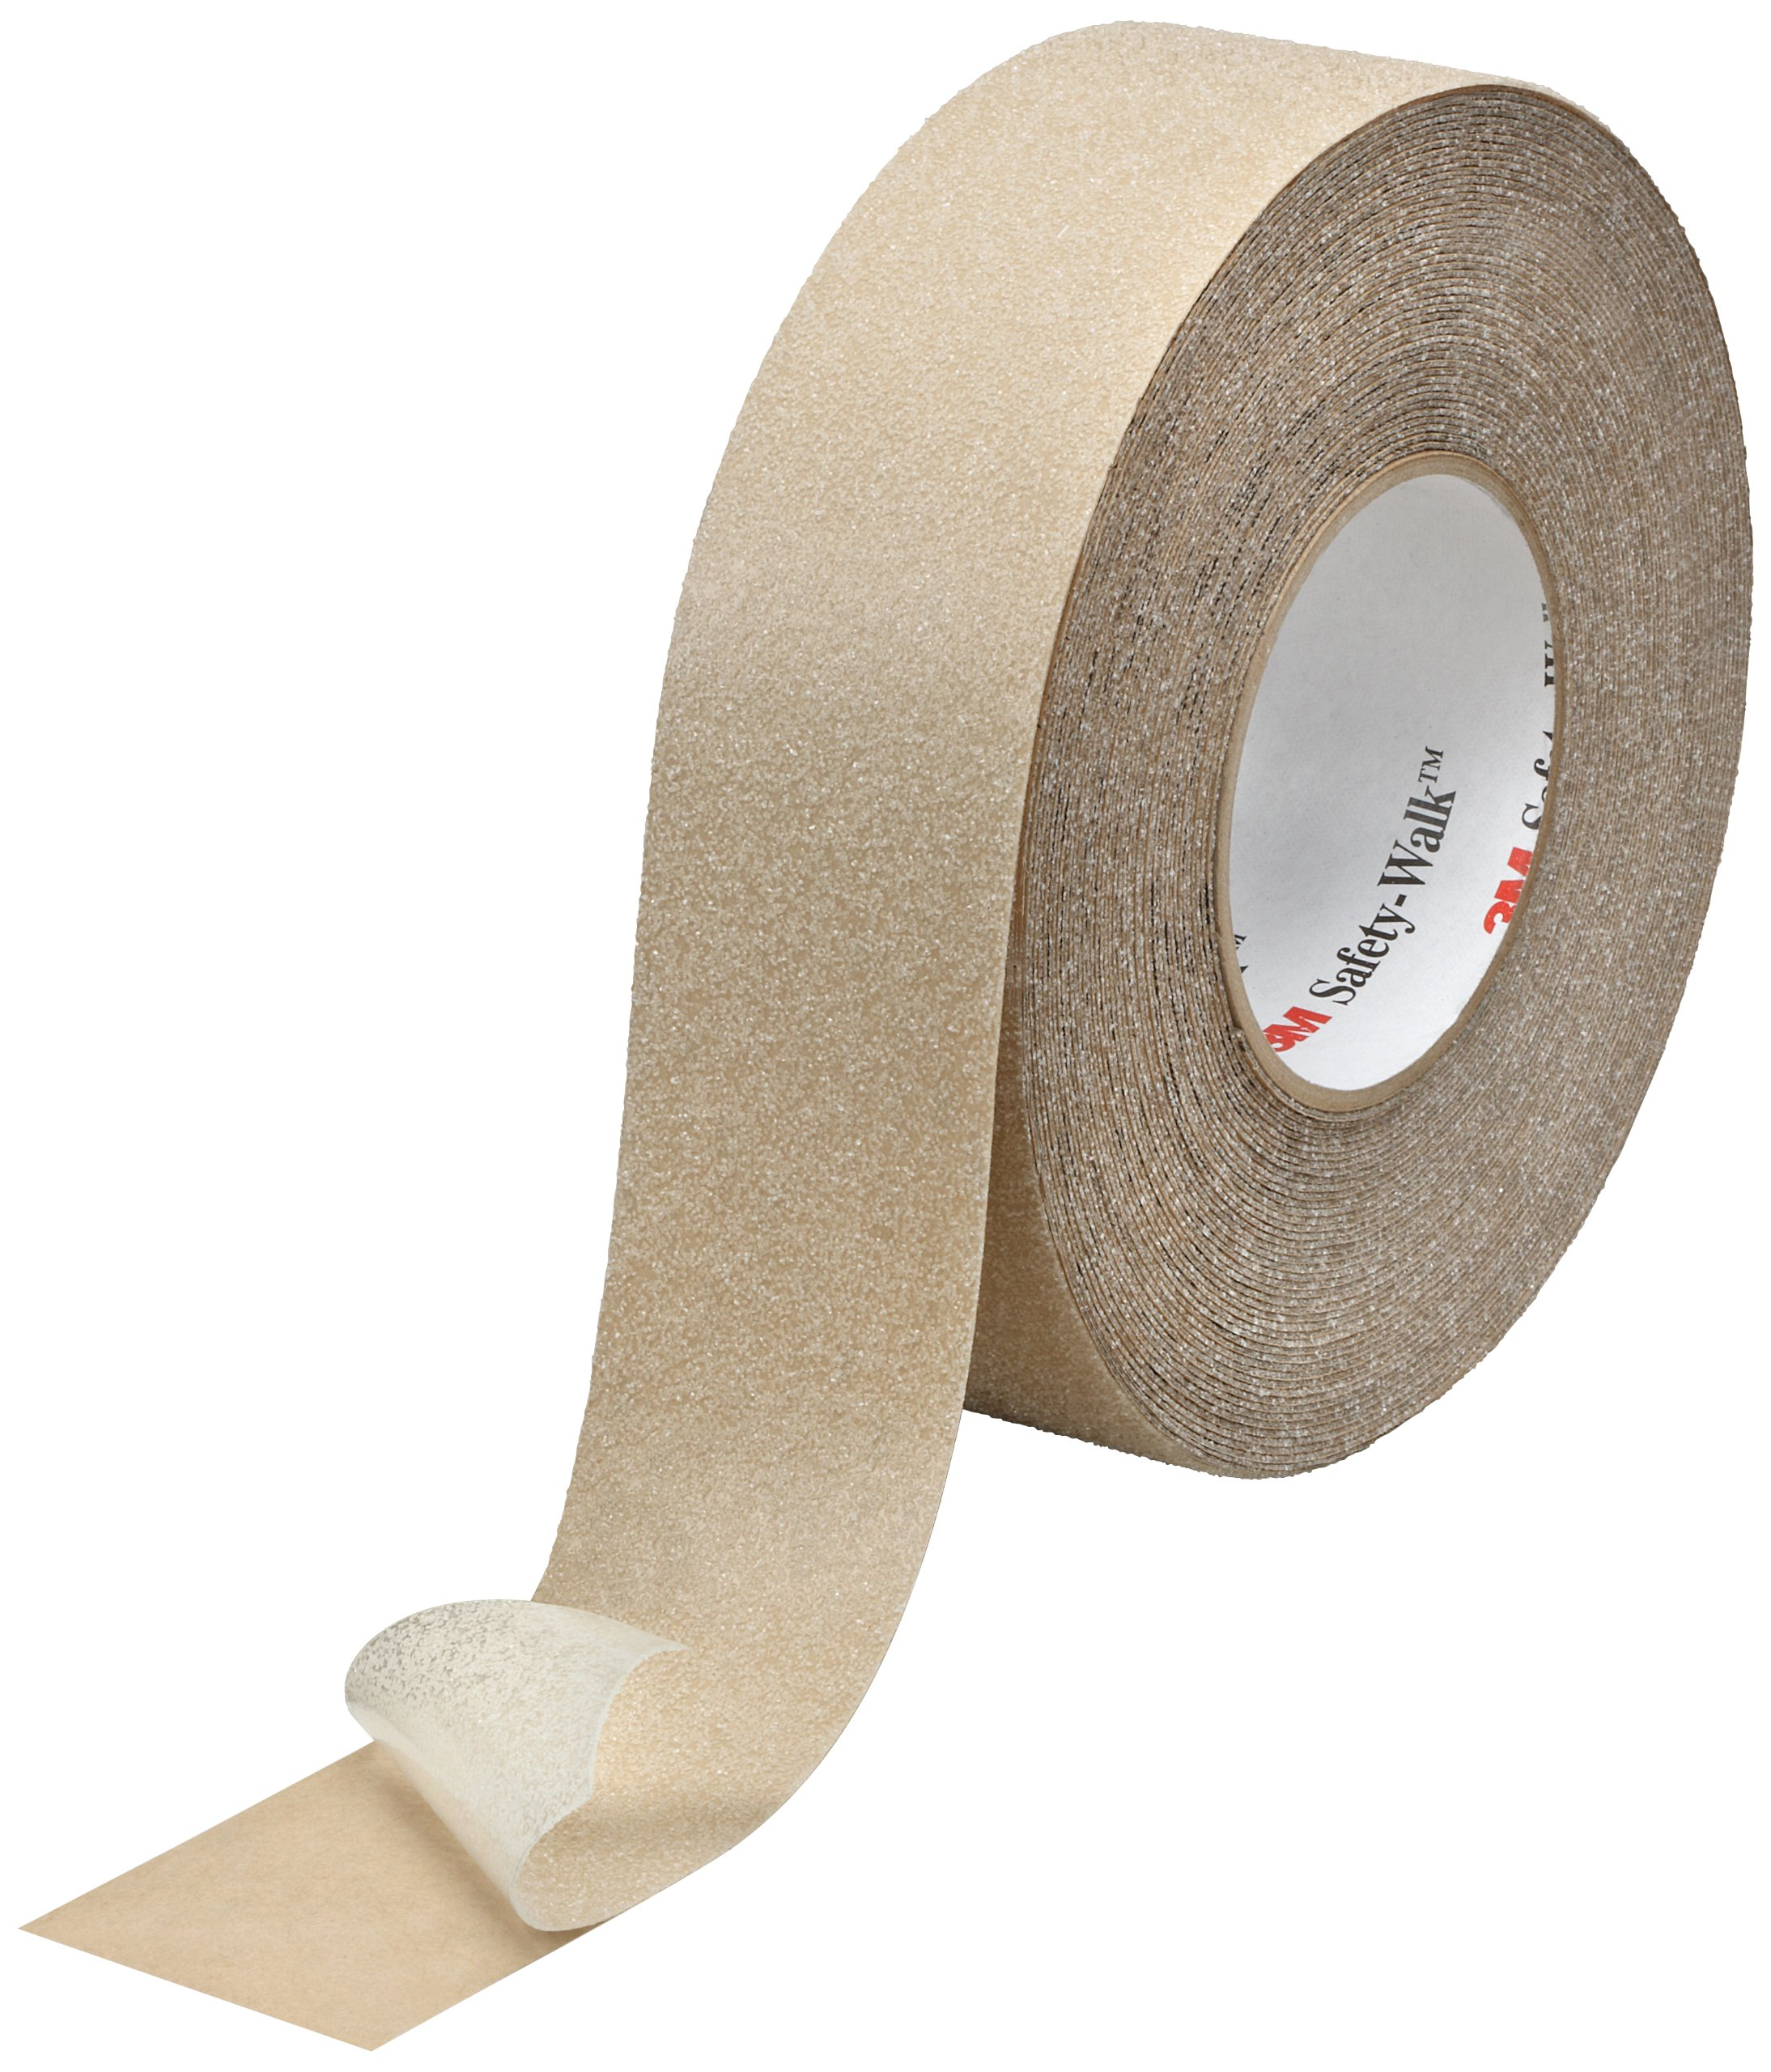 3M Safety-Walk Slip-Resistant General Purpose Tapes and Treads 620, Clear, 2'' Width, 60' Length (Pack of 2 Rolls)